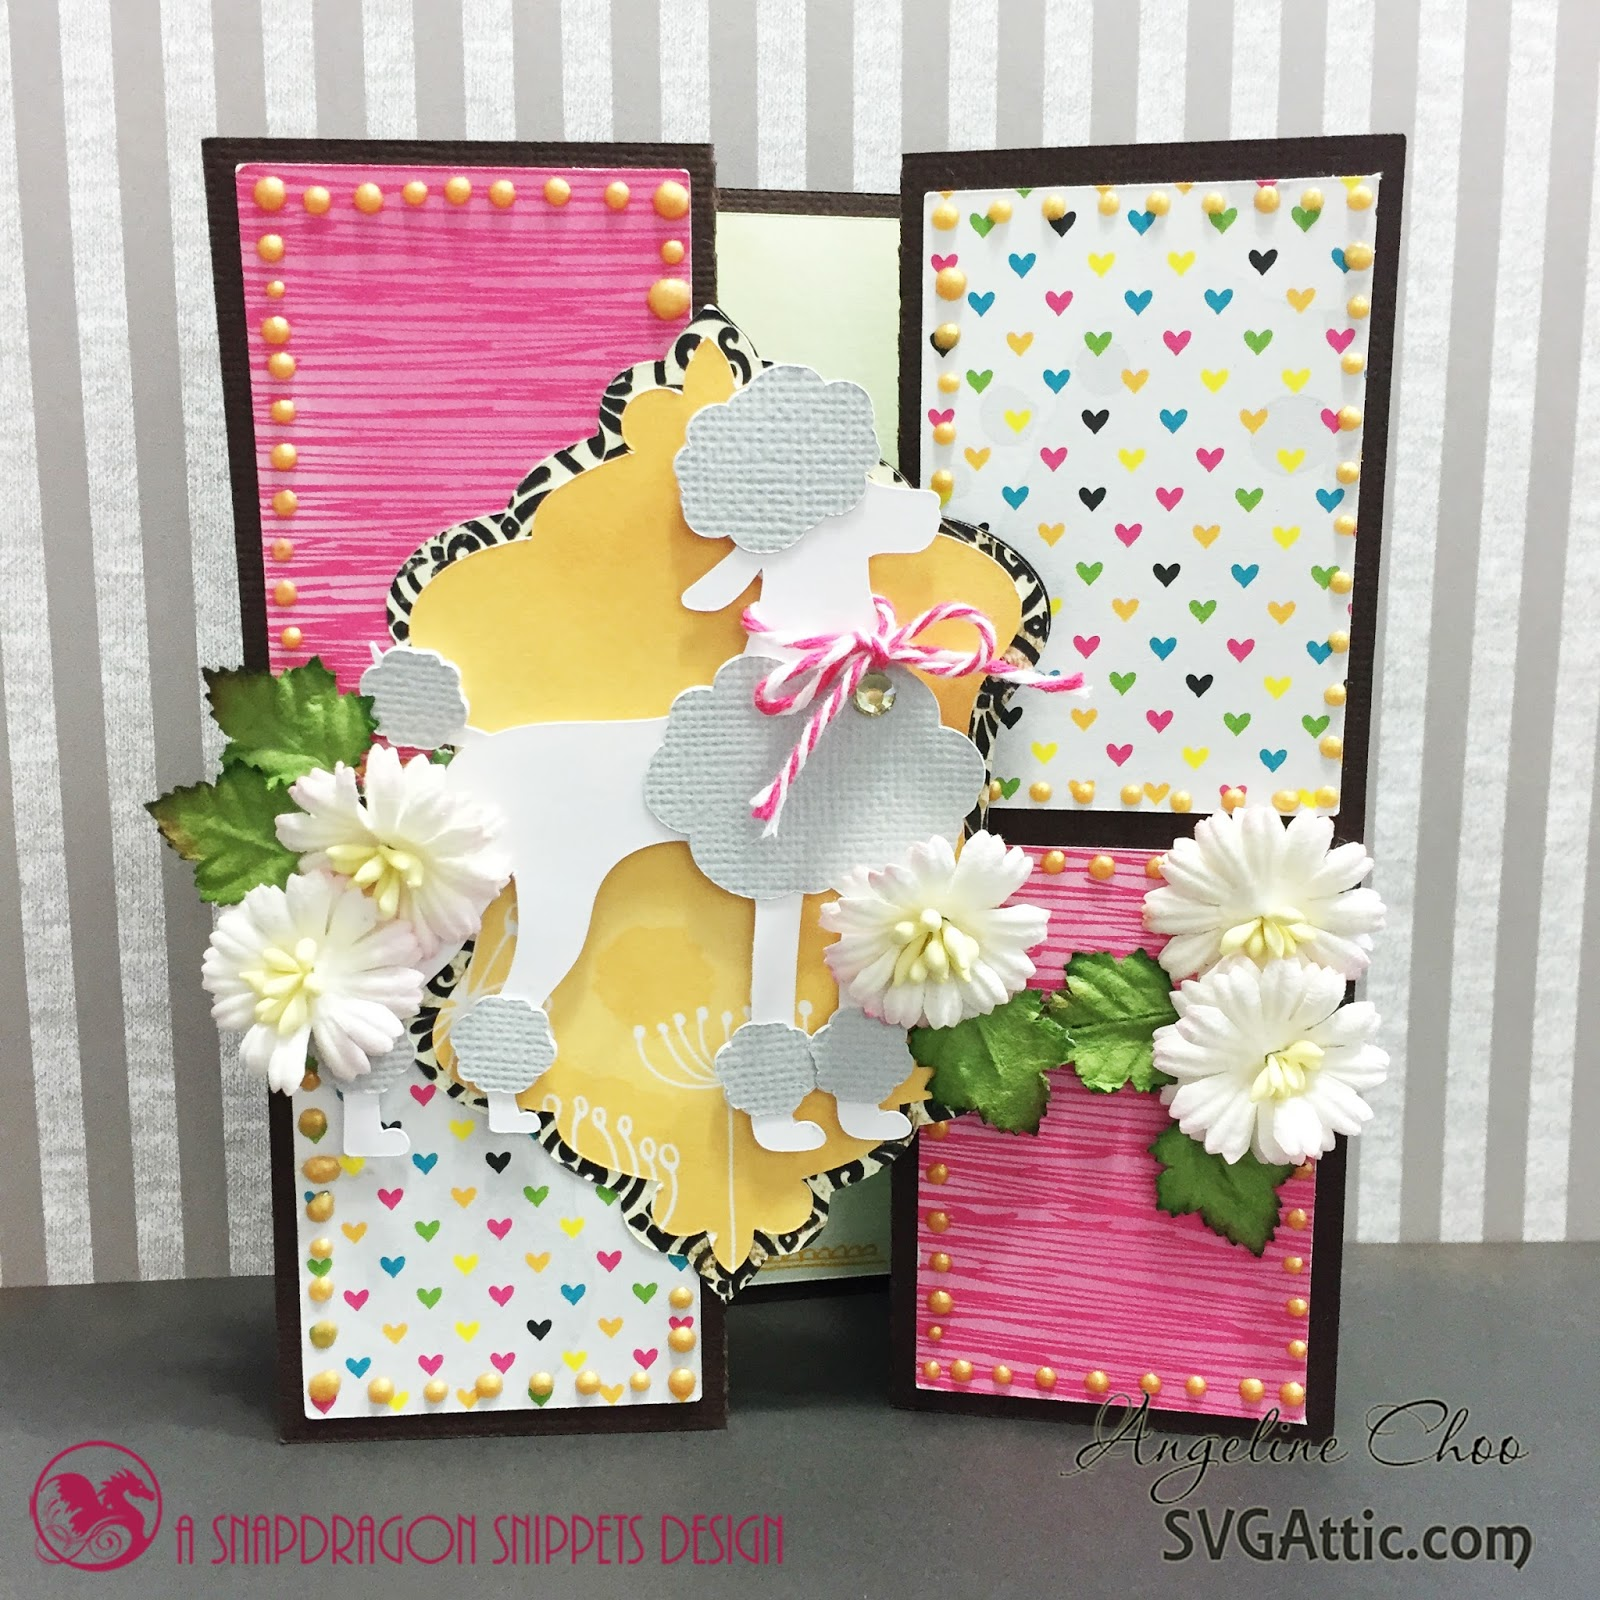 ScrappyScrappy: French Poodle card #svgattic #scrappyscrappy #card #bifold